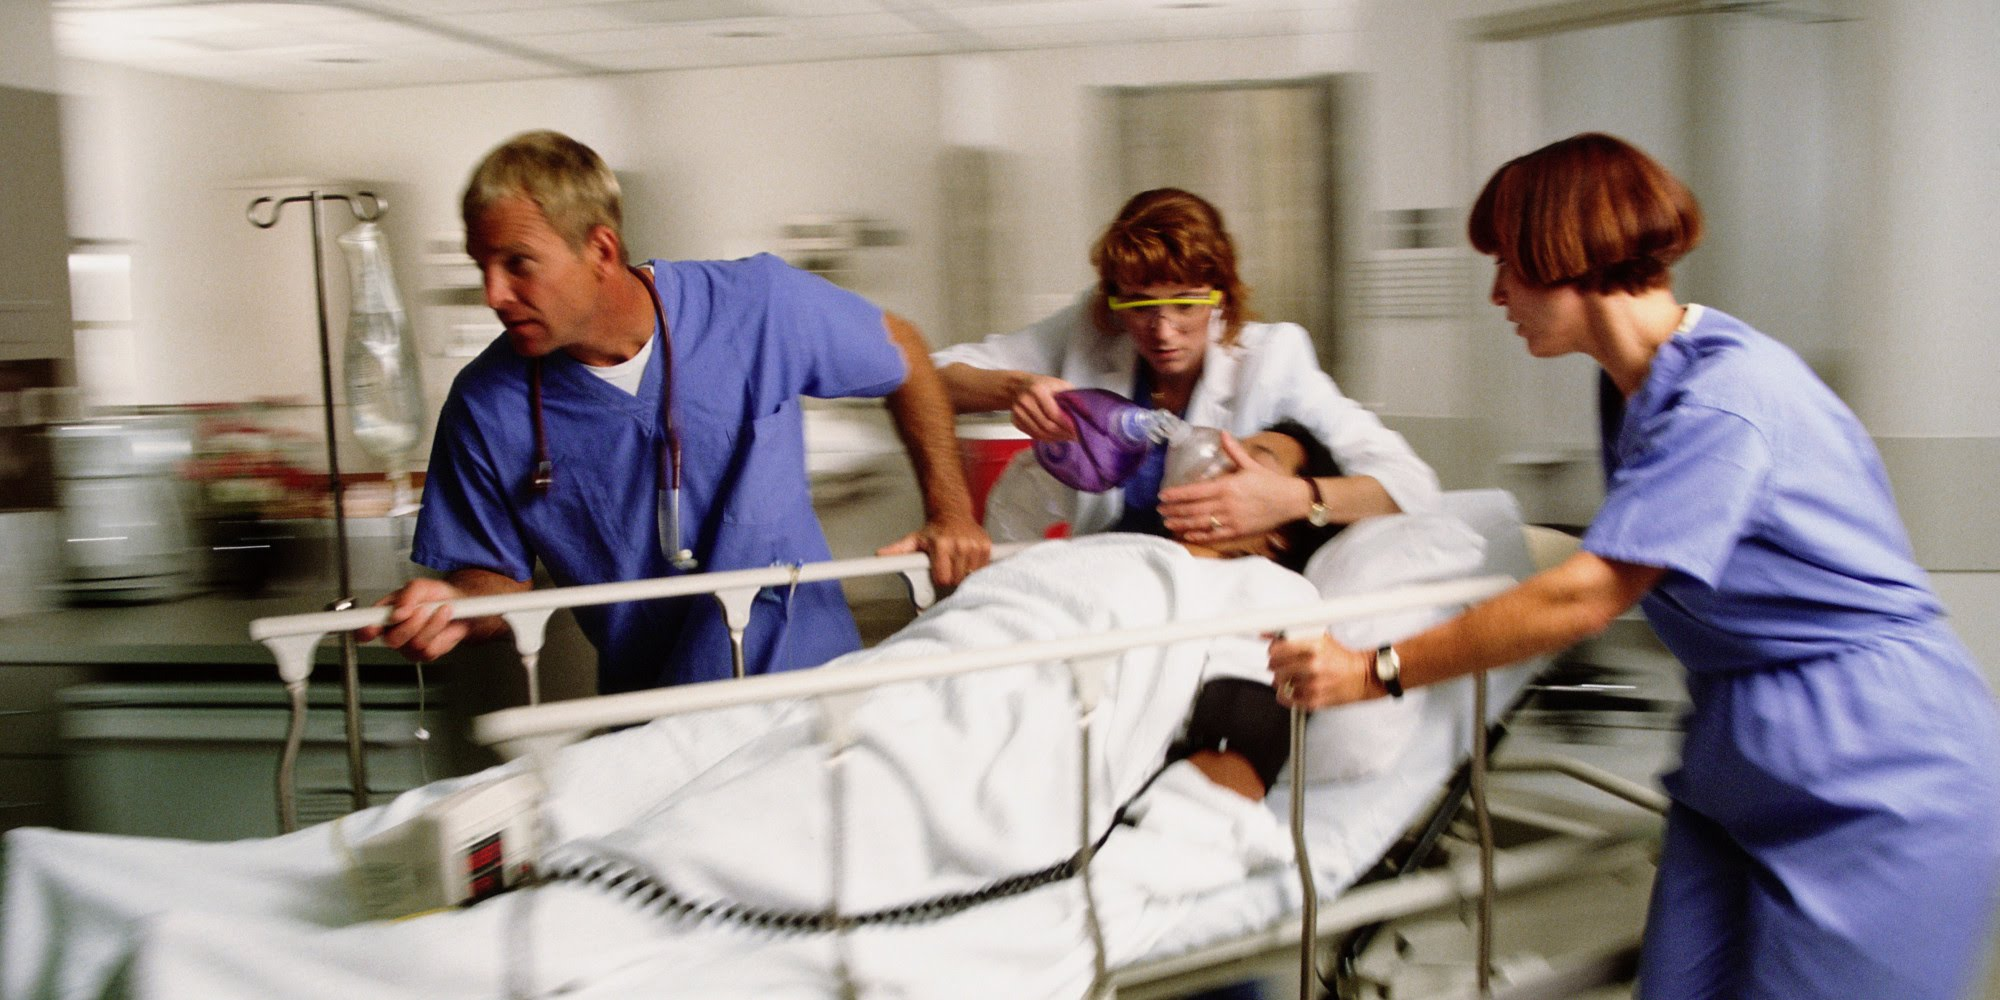 Mass hospital improves ER flow by prioritizing morning discharges  FierceHealthcare